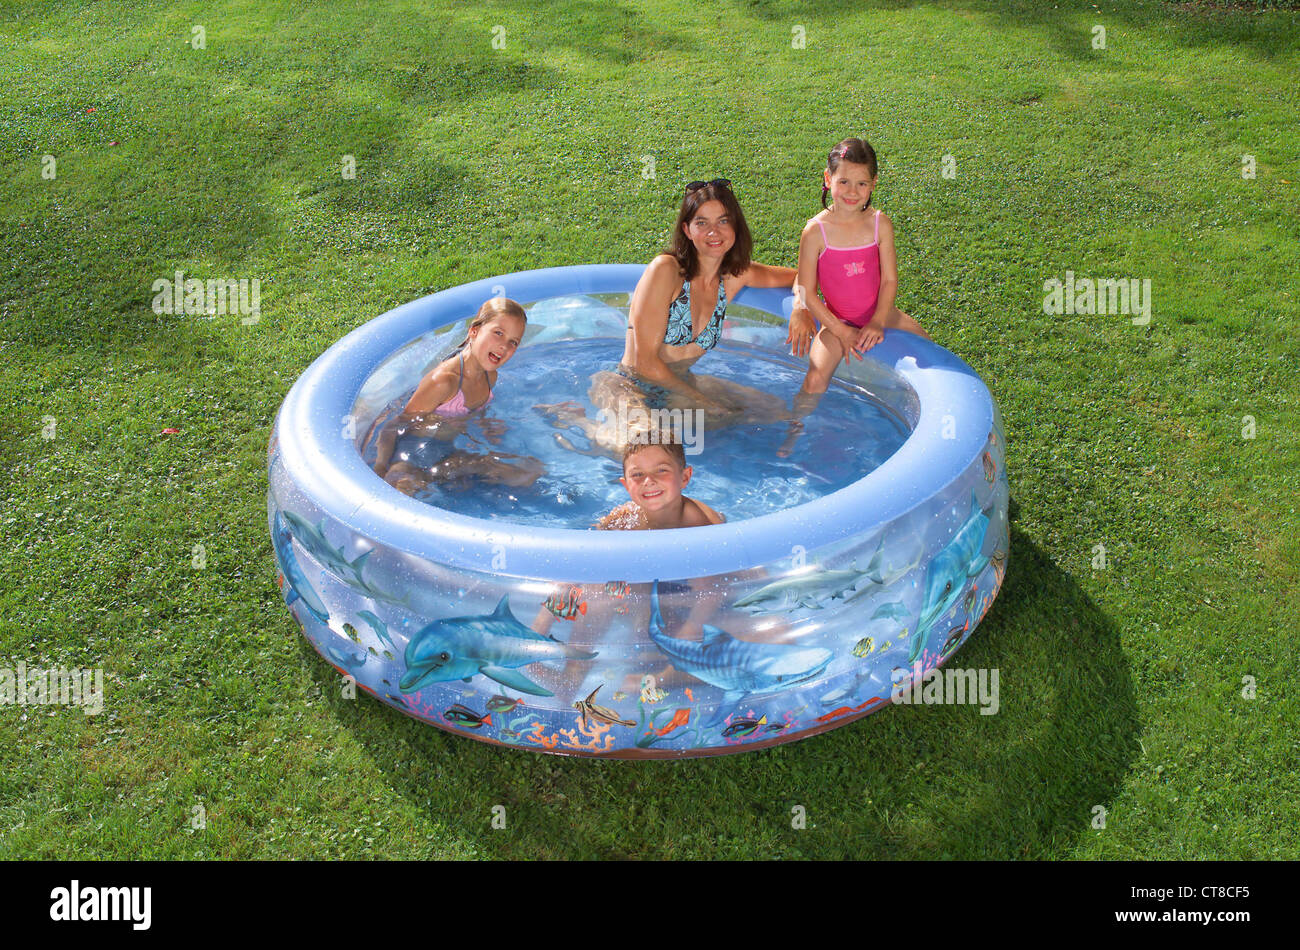 Paddling pool cooling off in the garden stock photo for Garden paddling pools